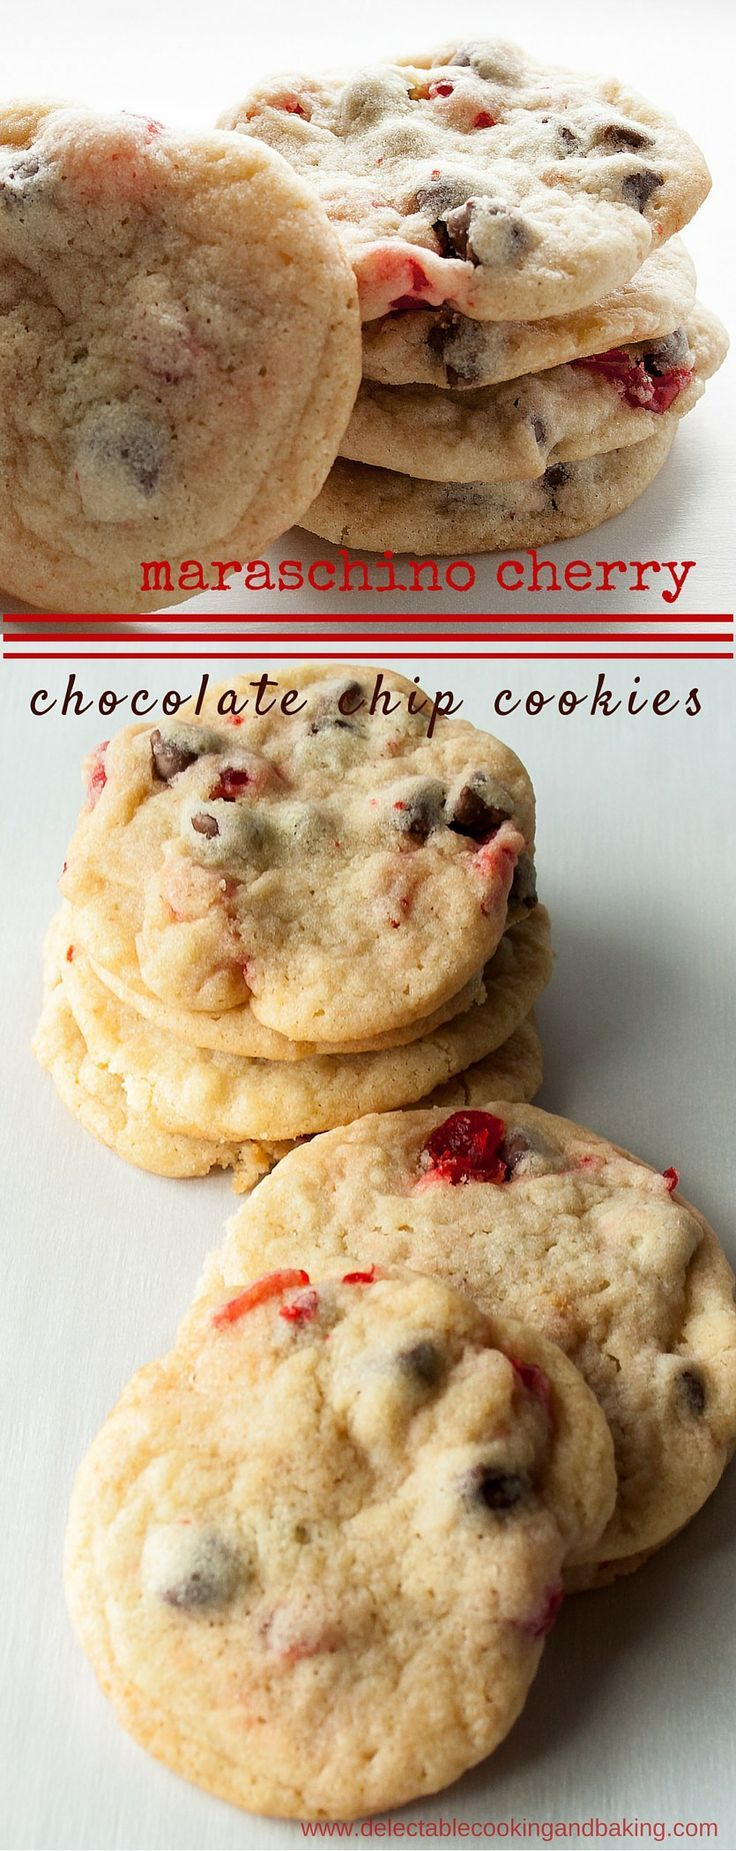 Oh my heavens! I've combined my darling husband's favorite cookie with one of my faves to make these Maraschino Cherry Chocolate Chip Cookies! DelectableCookingingandBaking.com | #chocolatechipcookies #cherrychocolatechipcookies #maraschinocherries #maraschinocherrychocolatechipcookies